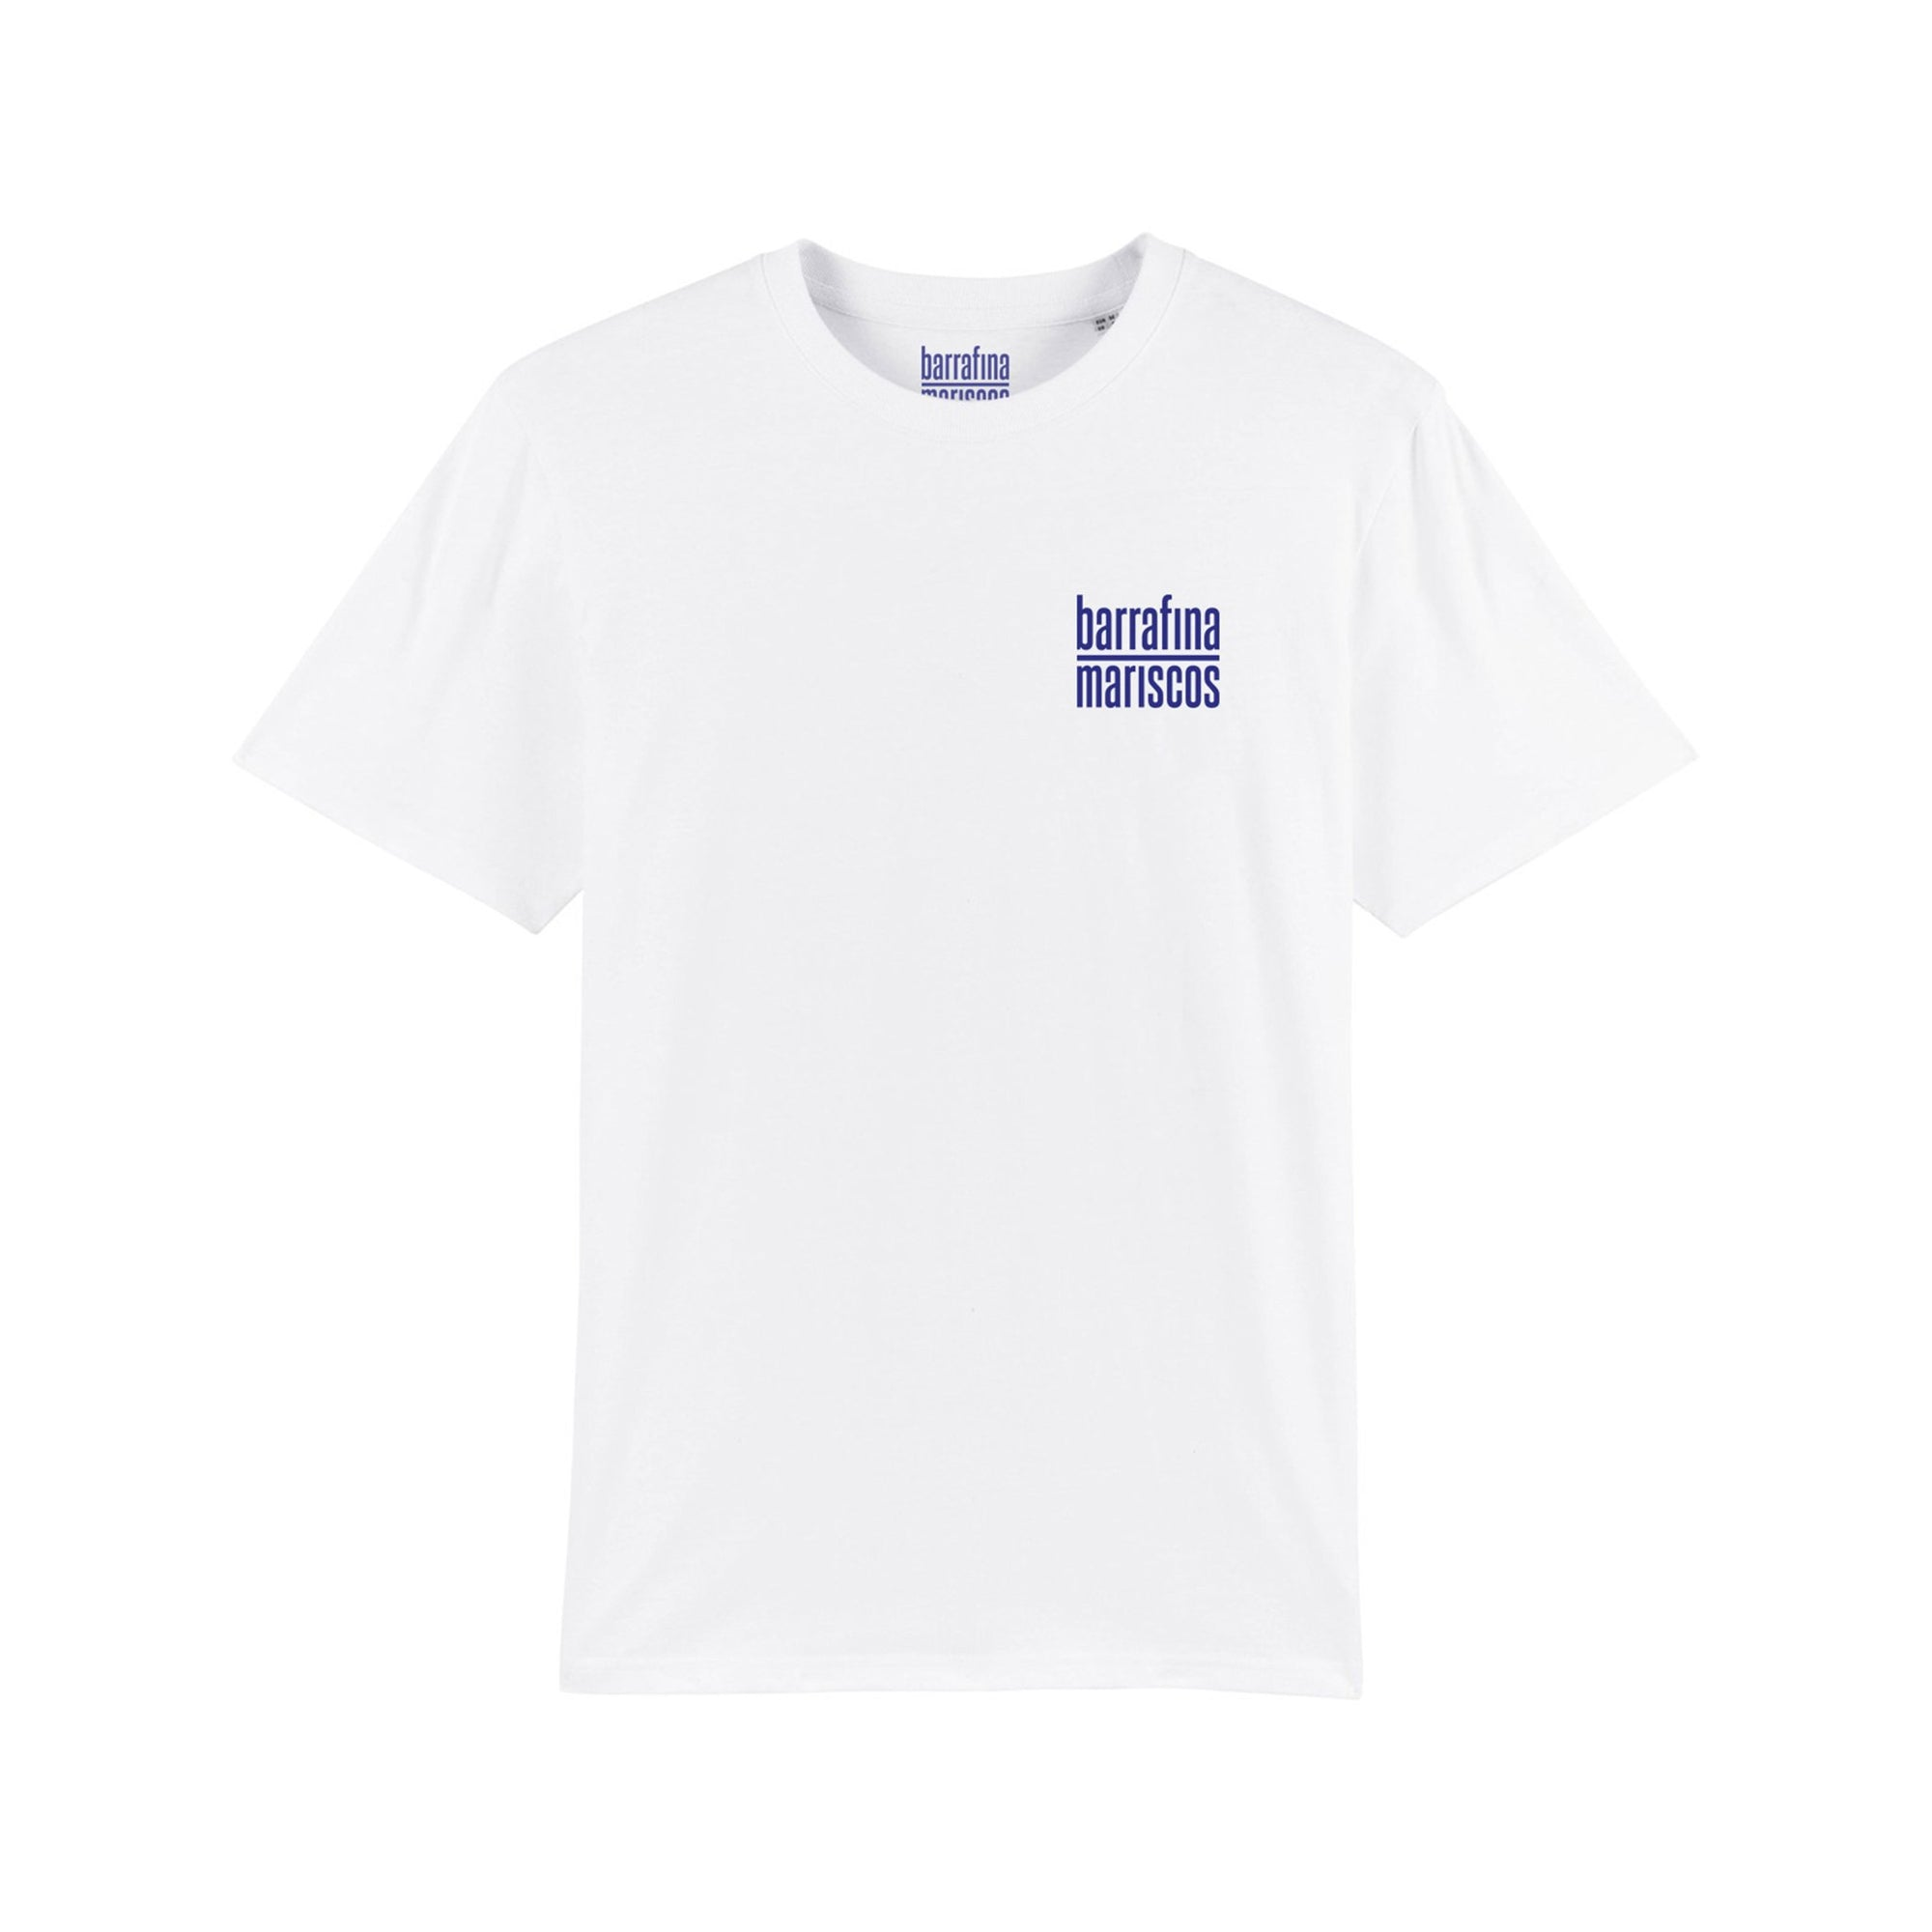 UJ Select x Barrafina Mariscos T-shirt – With Prawn